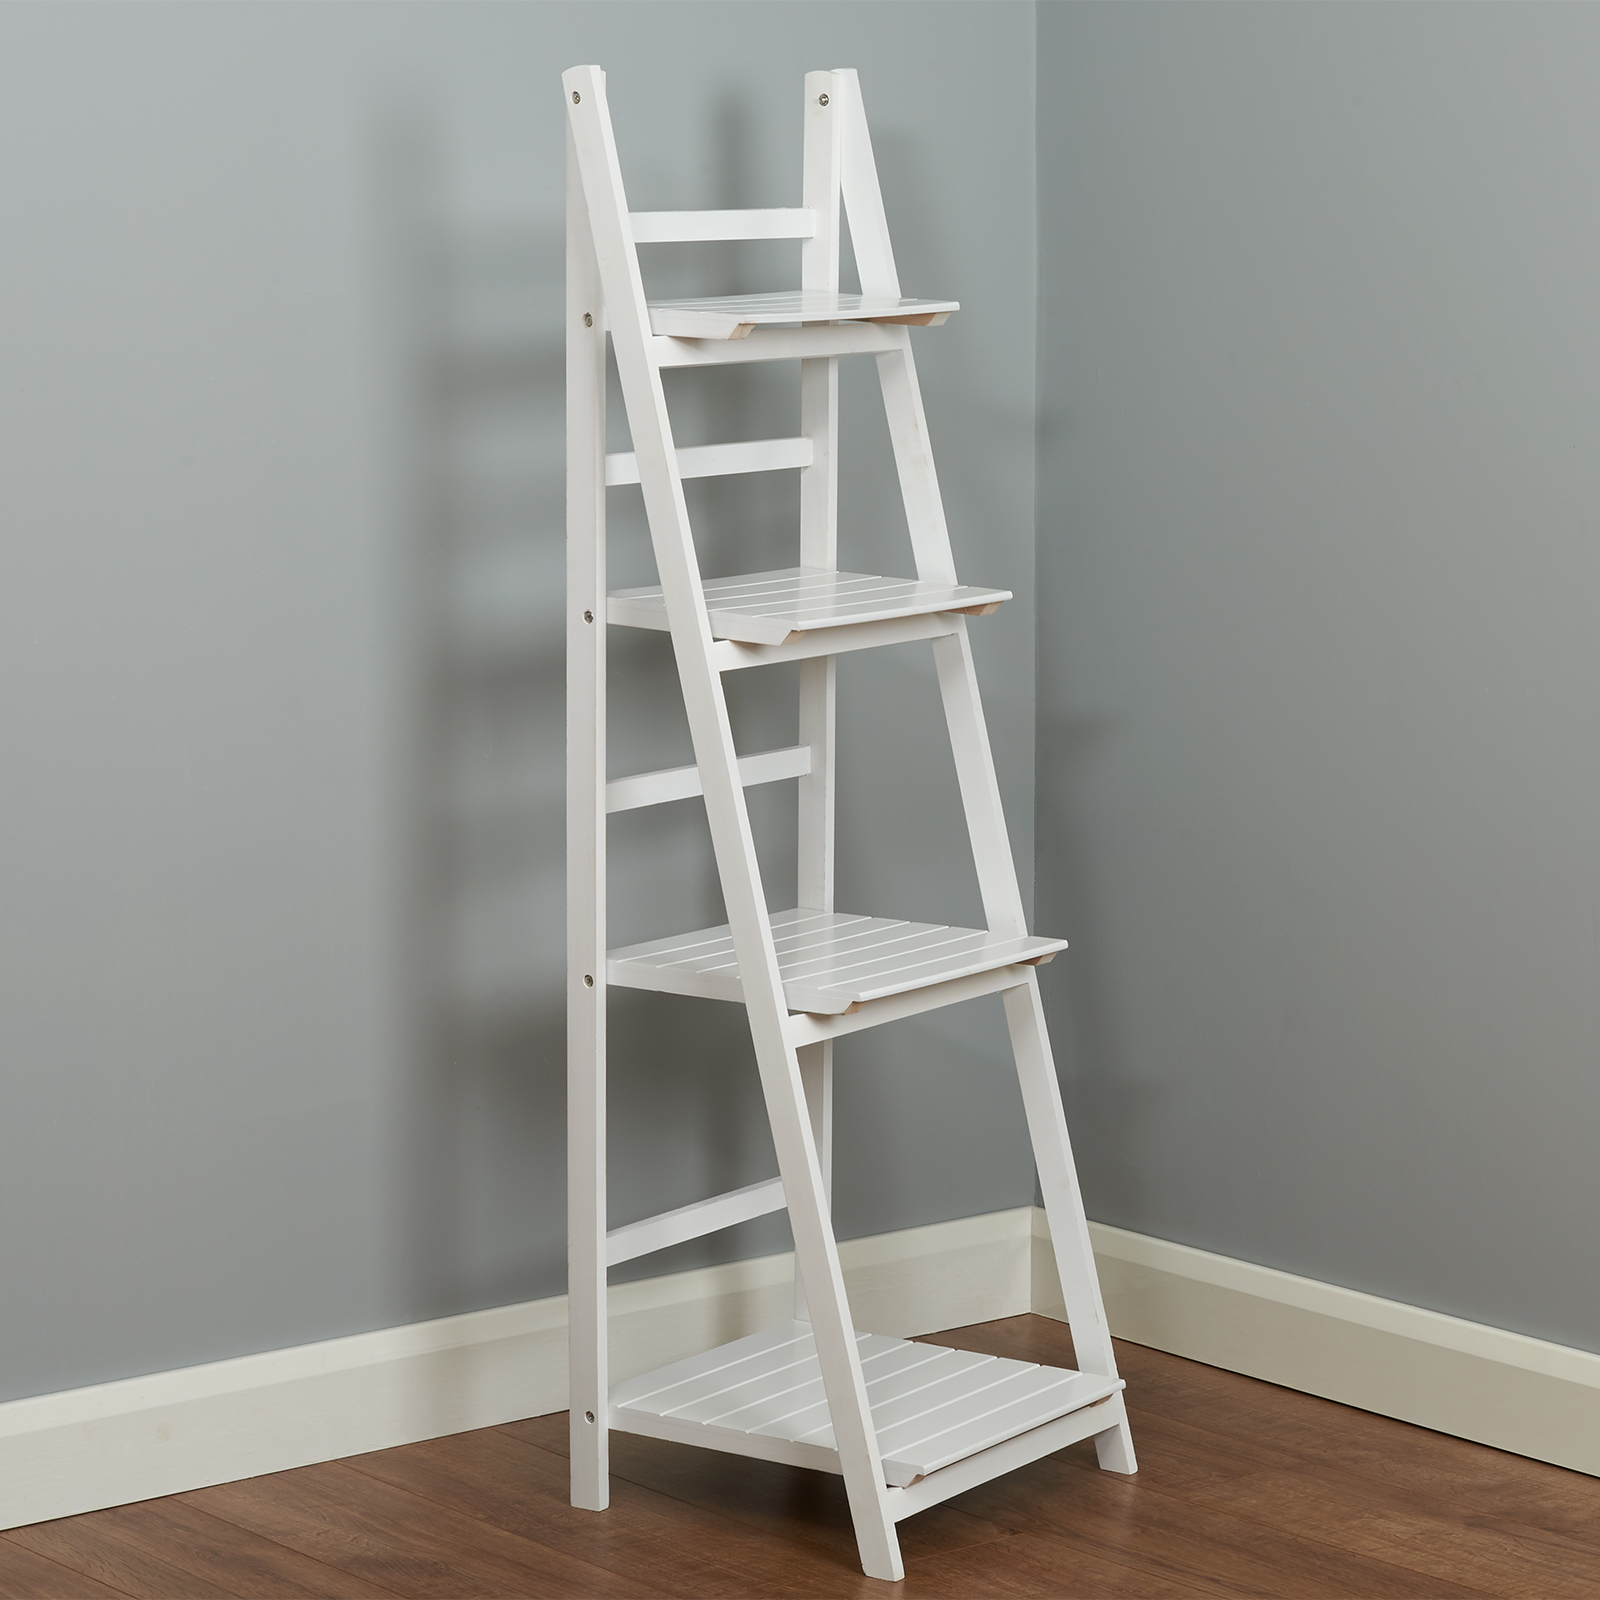 HARTLEYS WHITE 4 TIER FOLDING LADDER STORAGE HOME DISPLAY